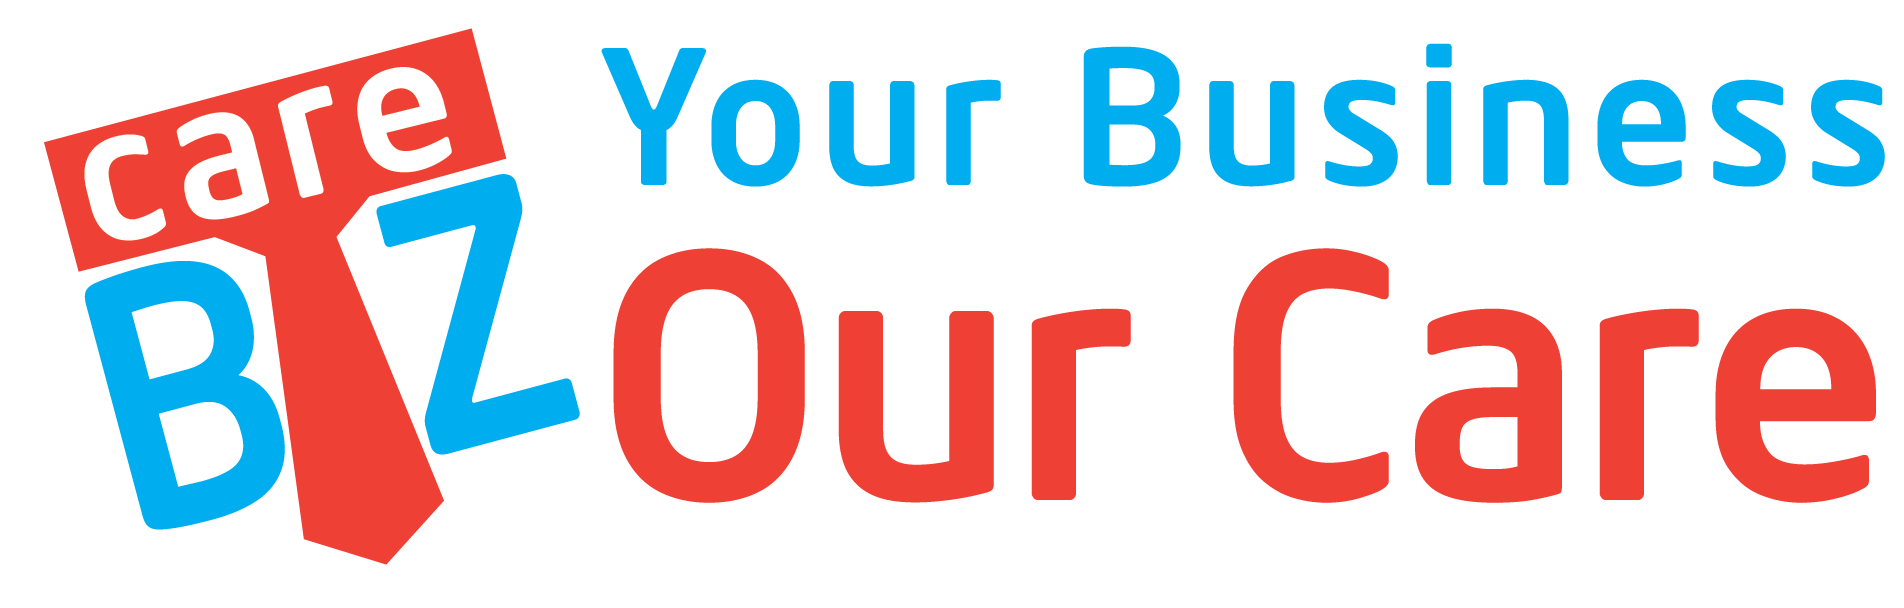 Bizcare Your Business Our Care - Social Media Agency